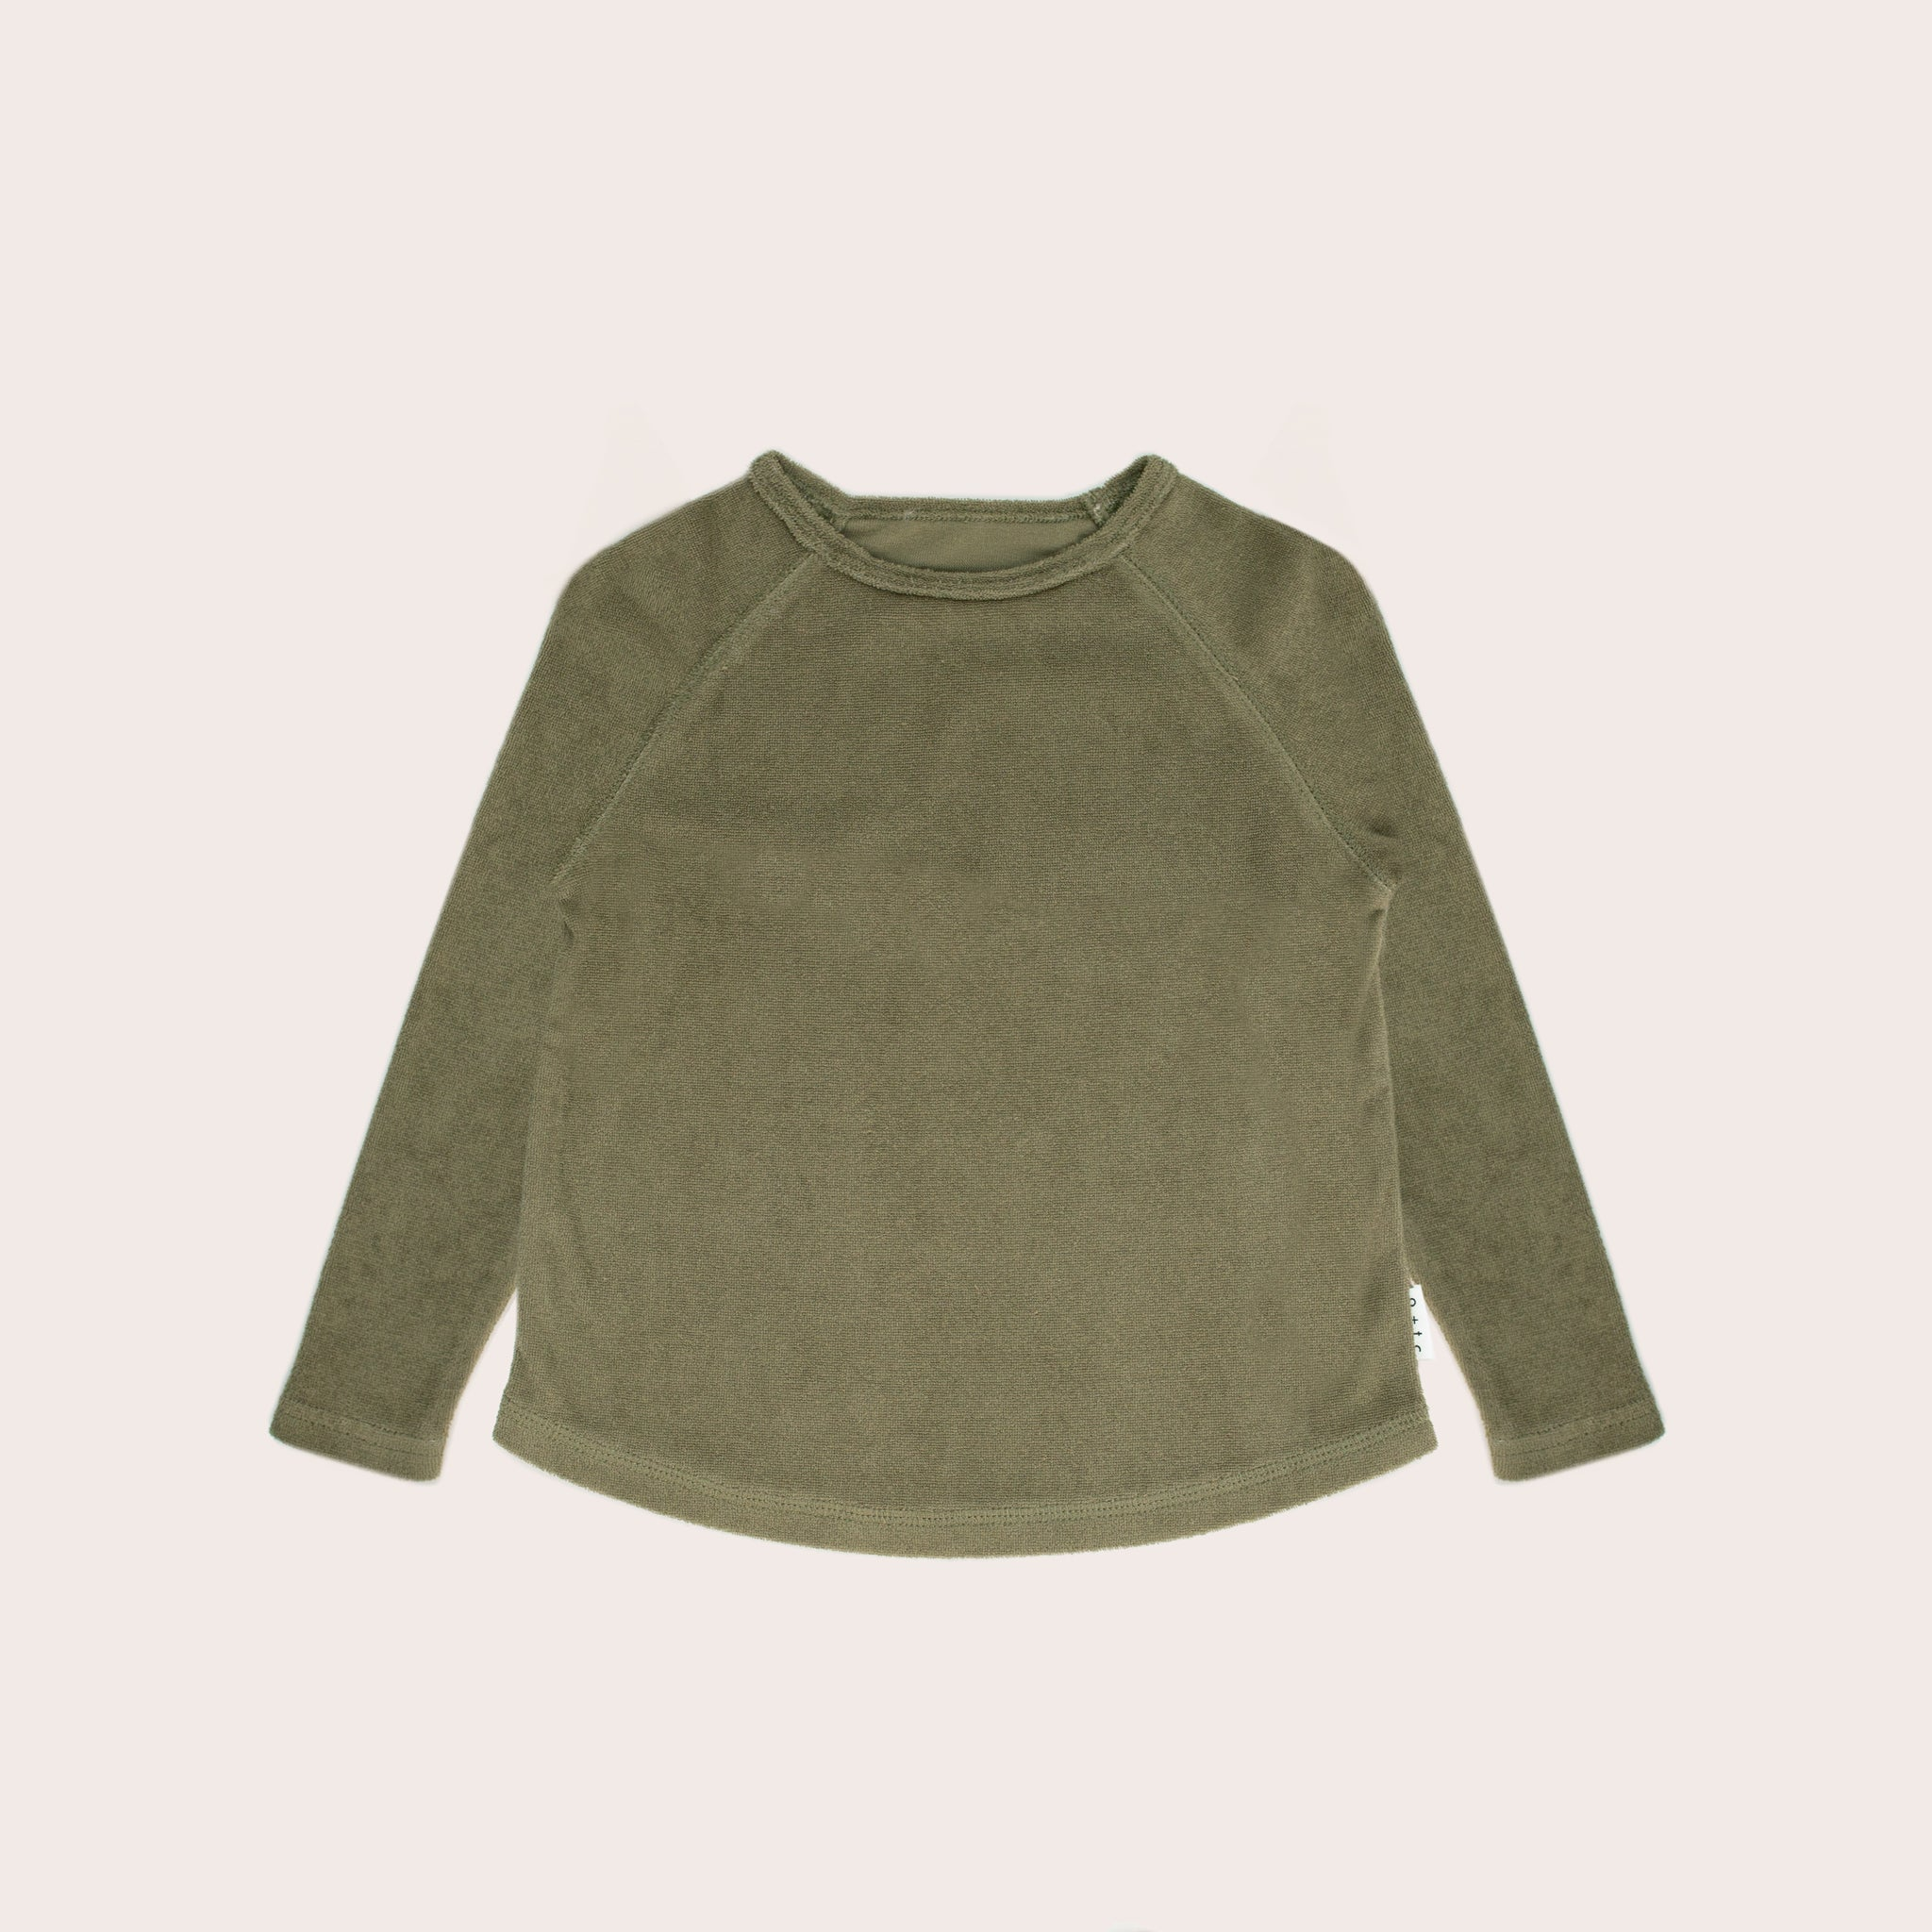 Simplicity of Childhood (SOC) Long Sleeve